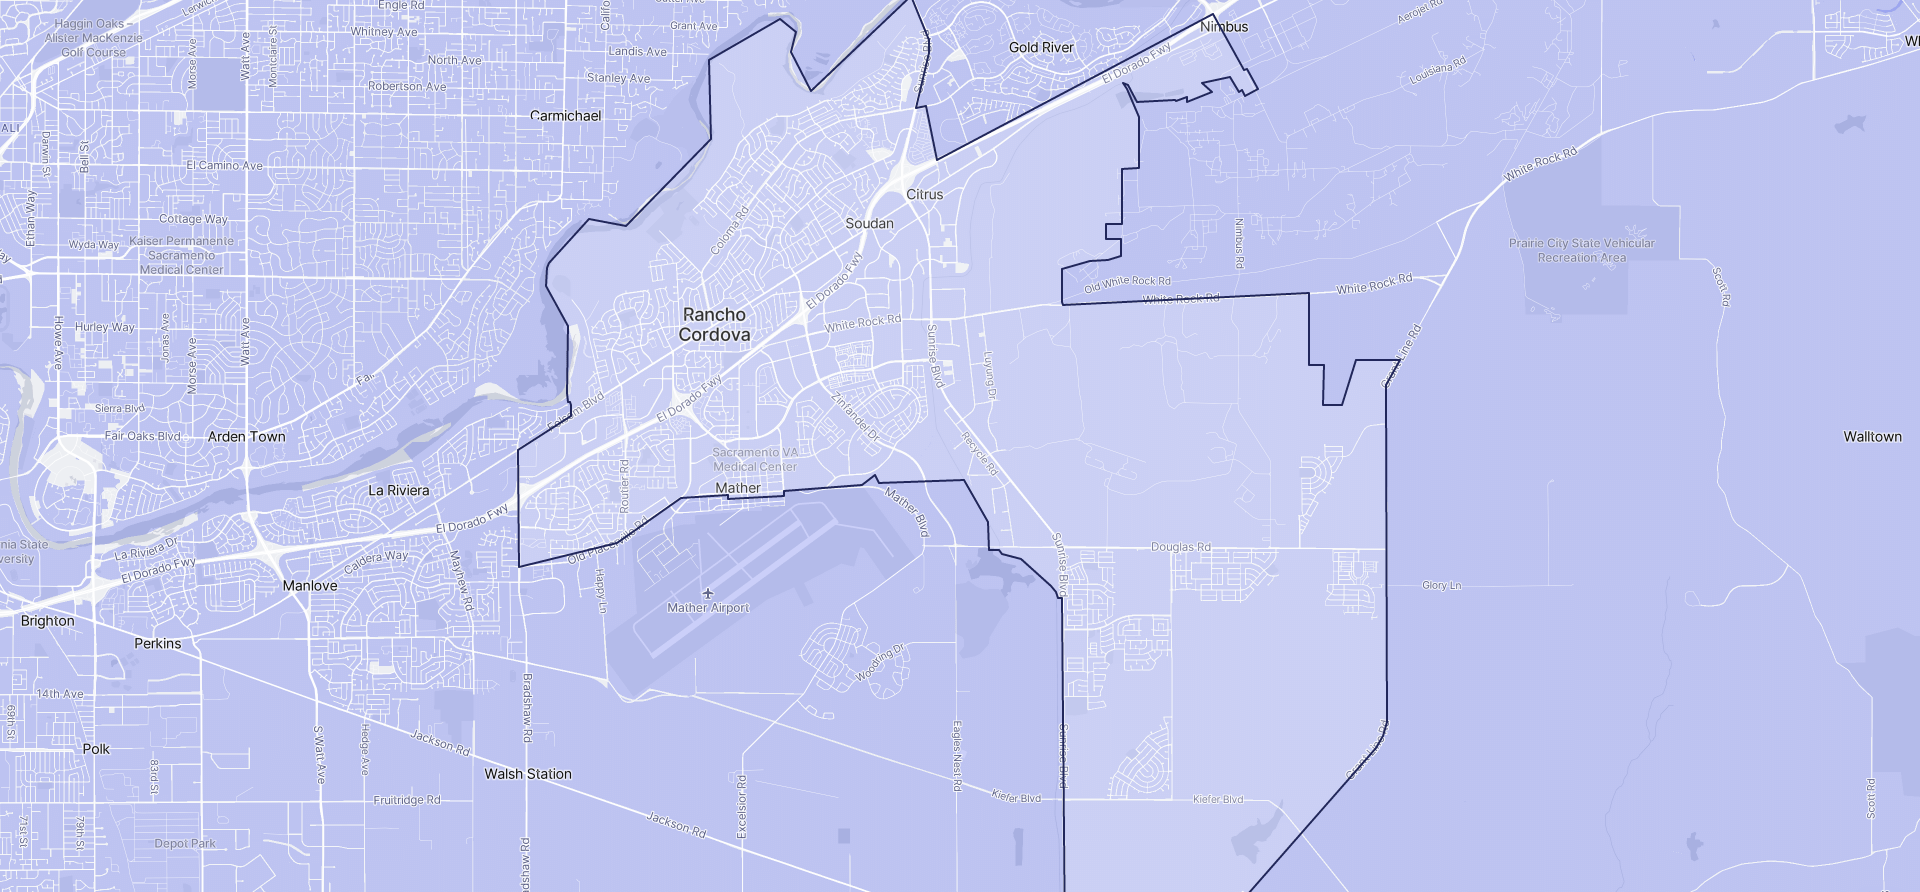 Image of Rancho Cordova boundaries on a map.